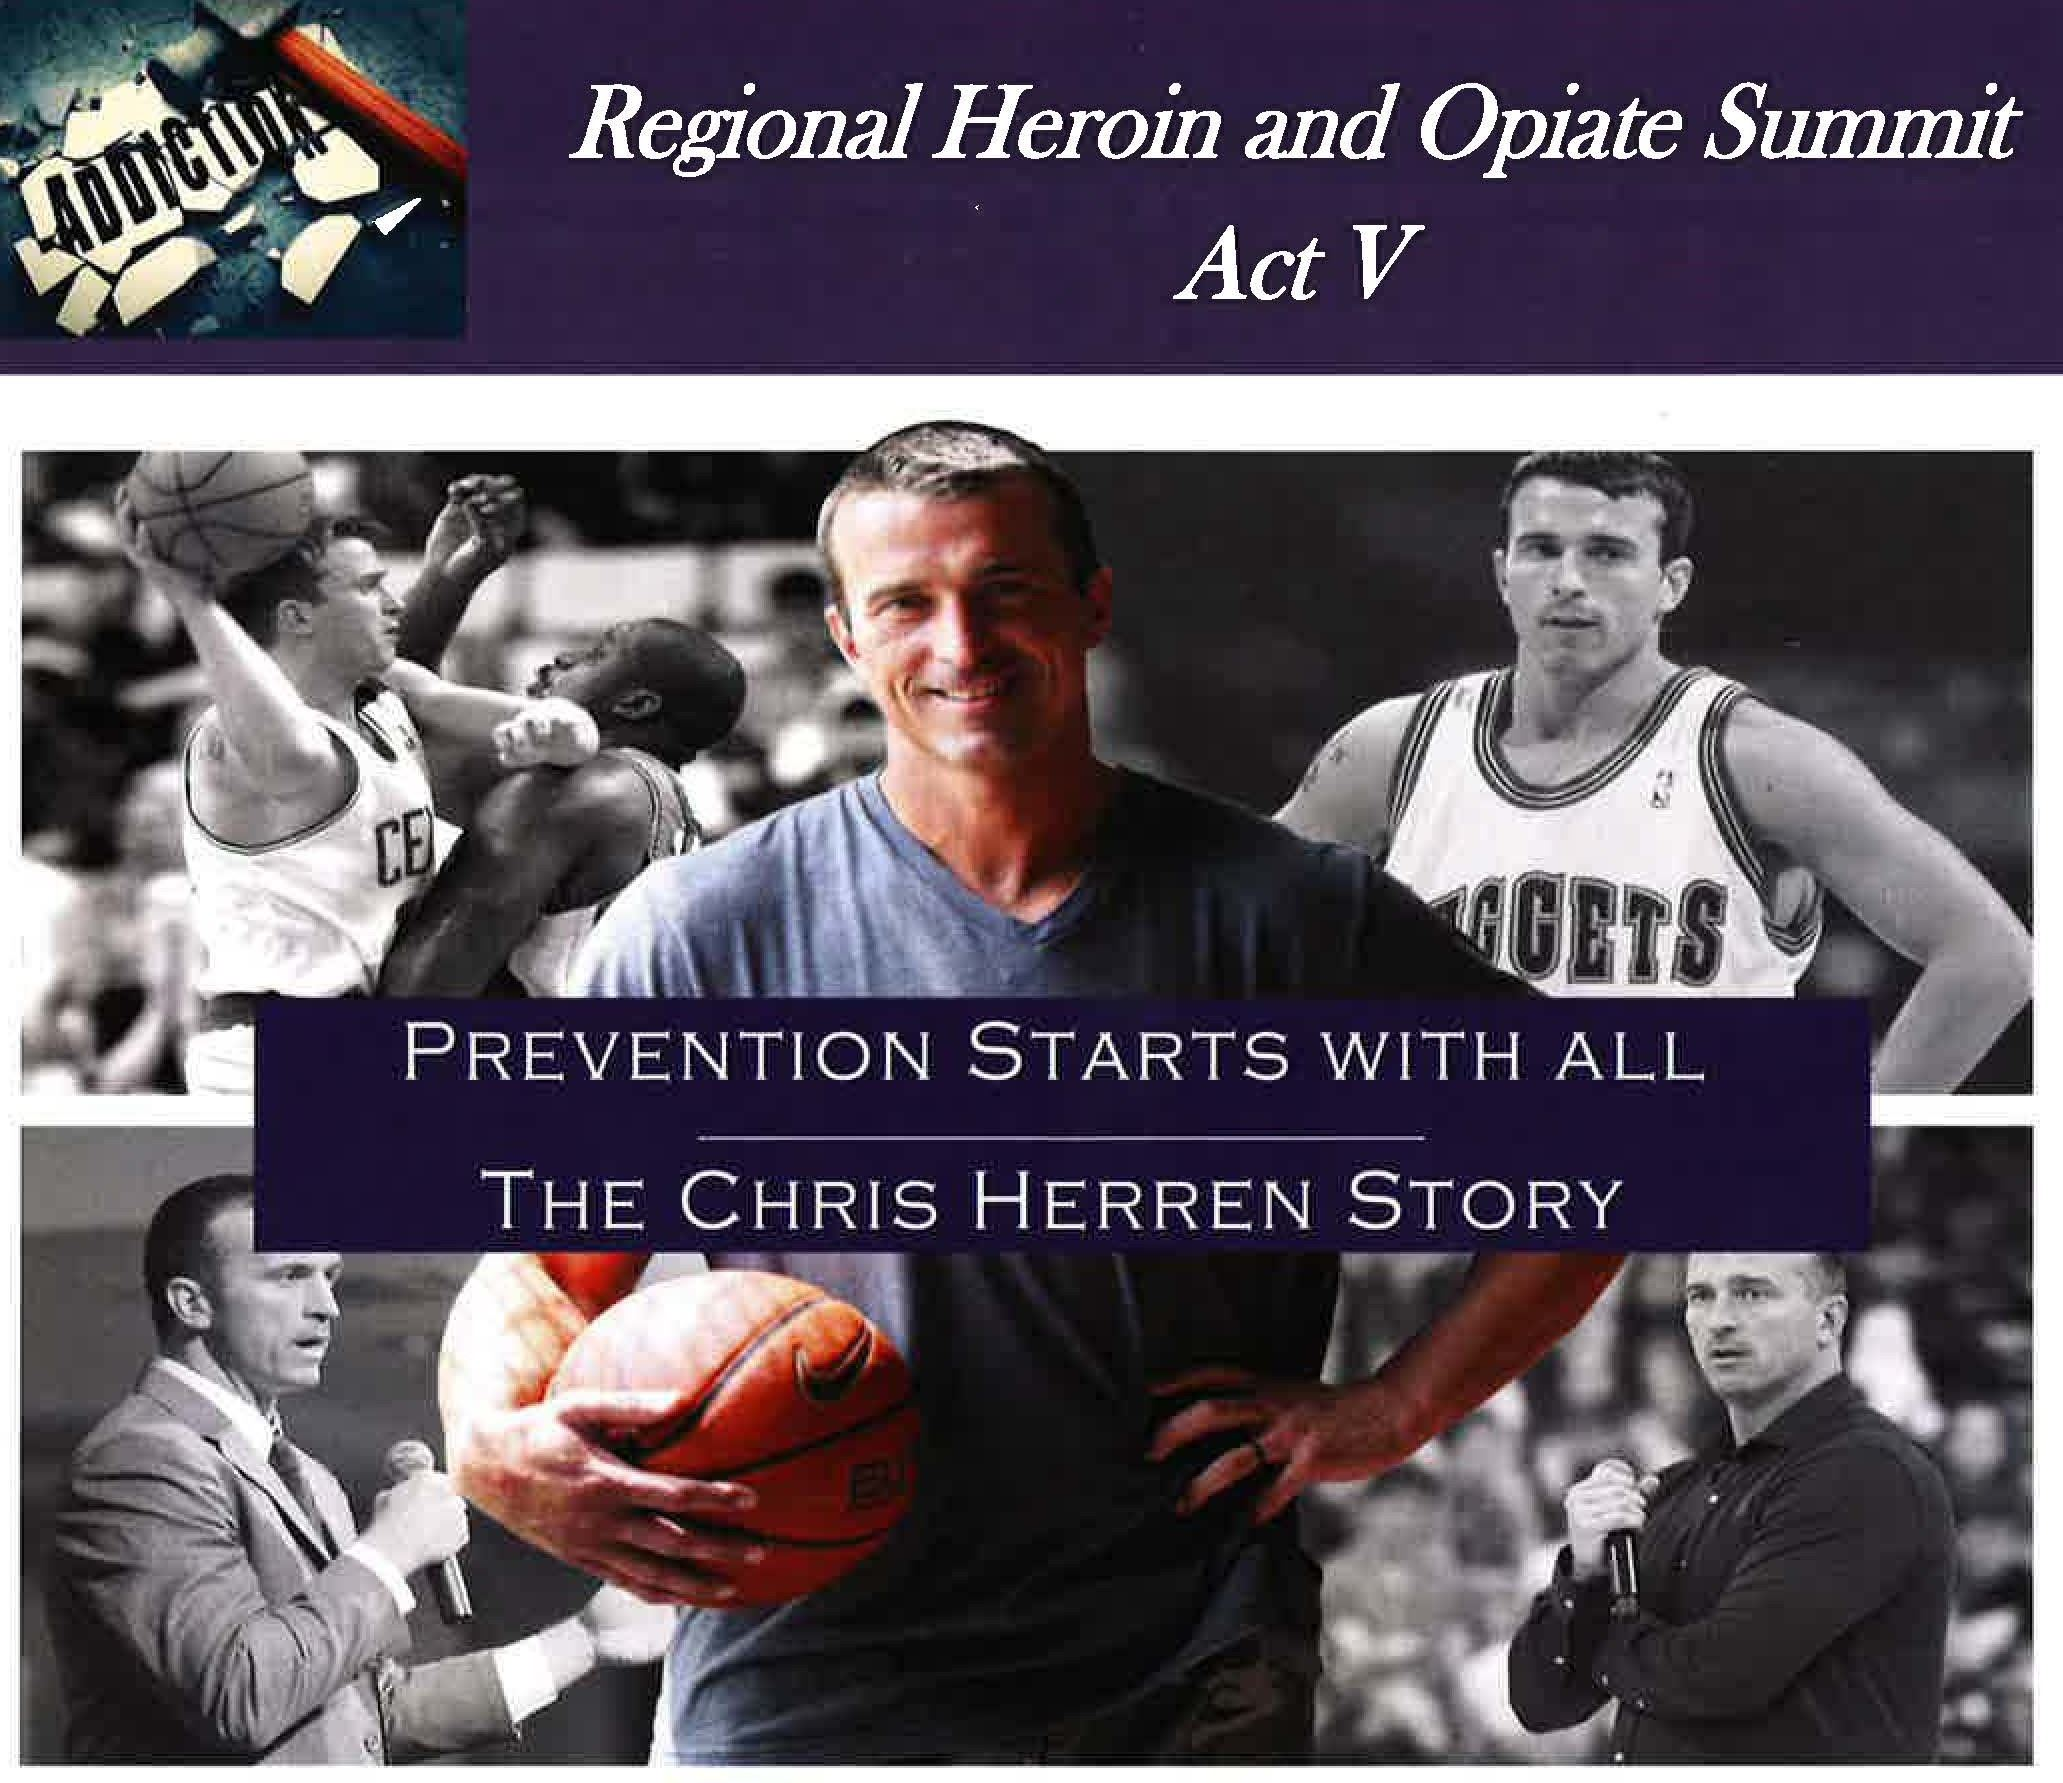 Regional Heroin and Opiate Summit Act V